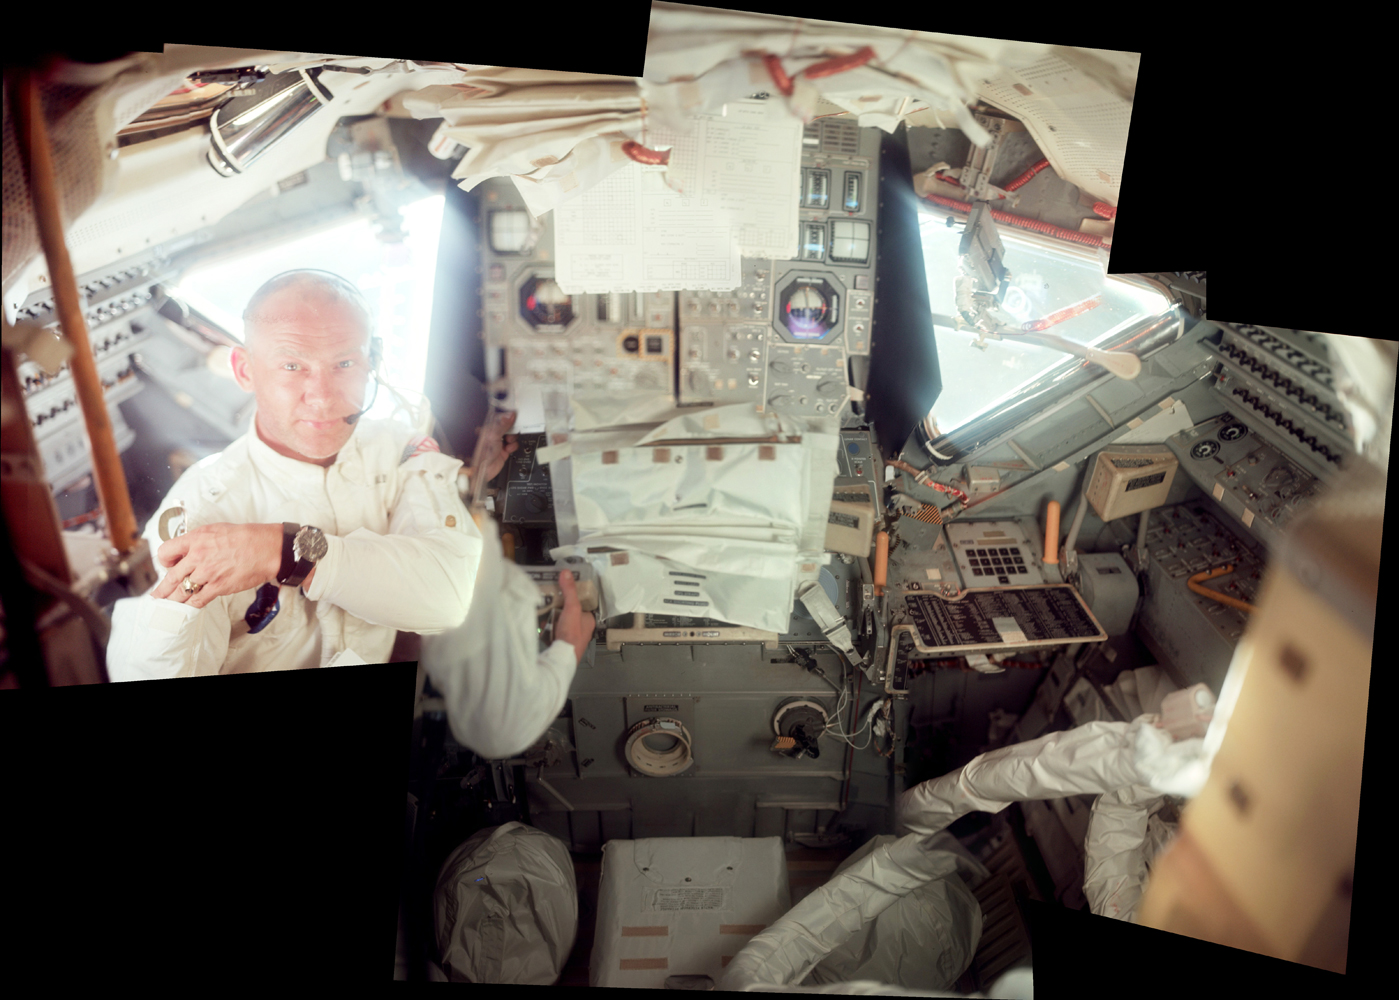 Buzz Aldrin during the initial inspection of the Lunar Module early in the mission. Buzz is wearing his intra-vehicular suit, designed to be as flame retardant as the rest of the ship, and made from the same fabric as the outer layer of the spacesuits.